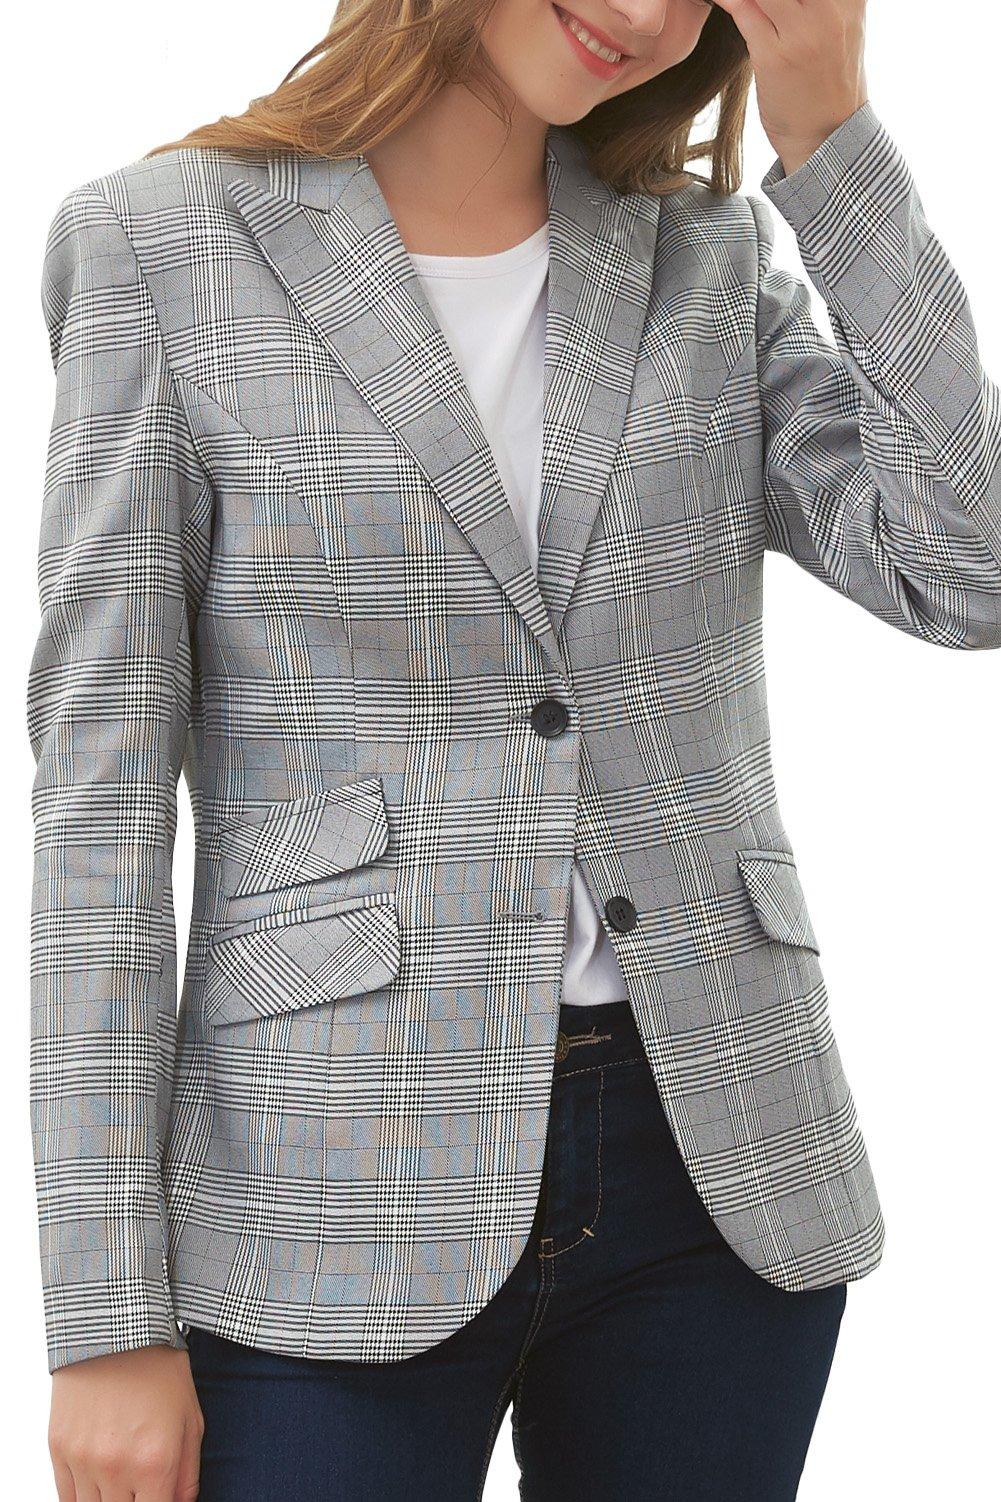 Hanayome Women's Blazer Two-Button Regular Fitted Gray Lattice Formal Separate Suit MI5 (Grey, 18W)